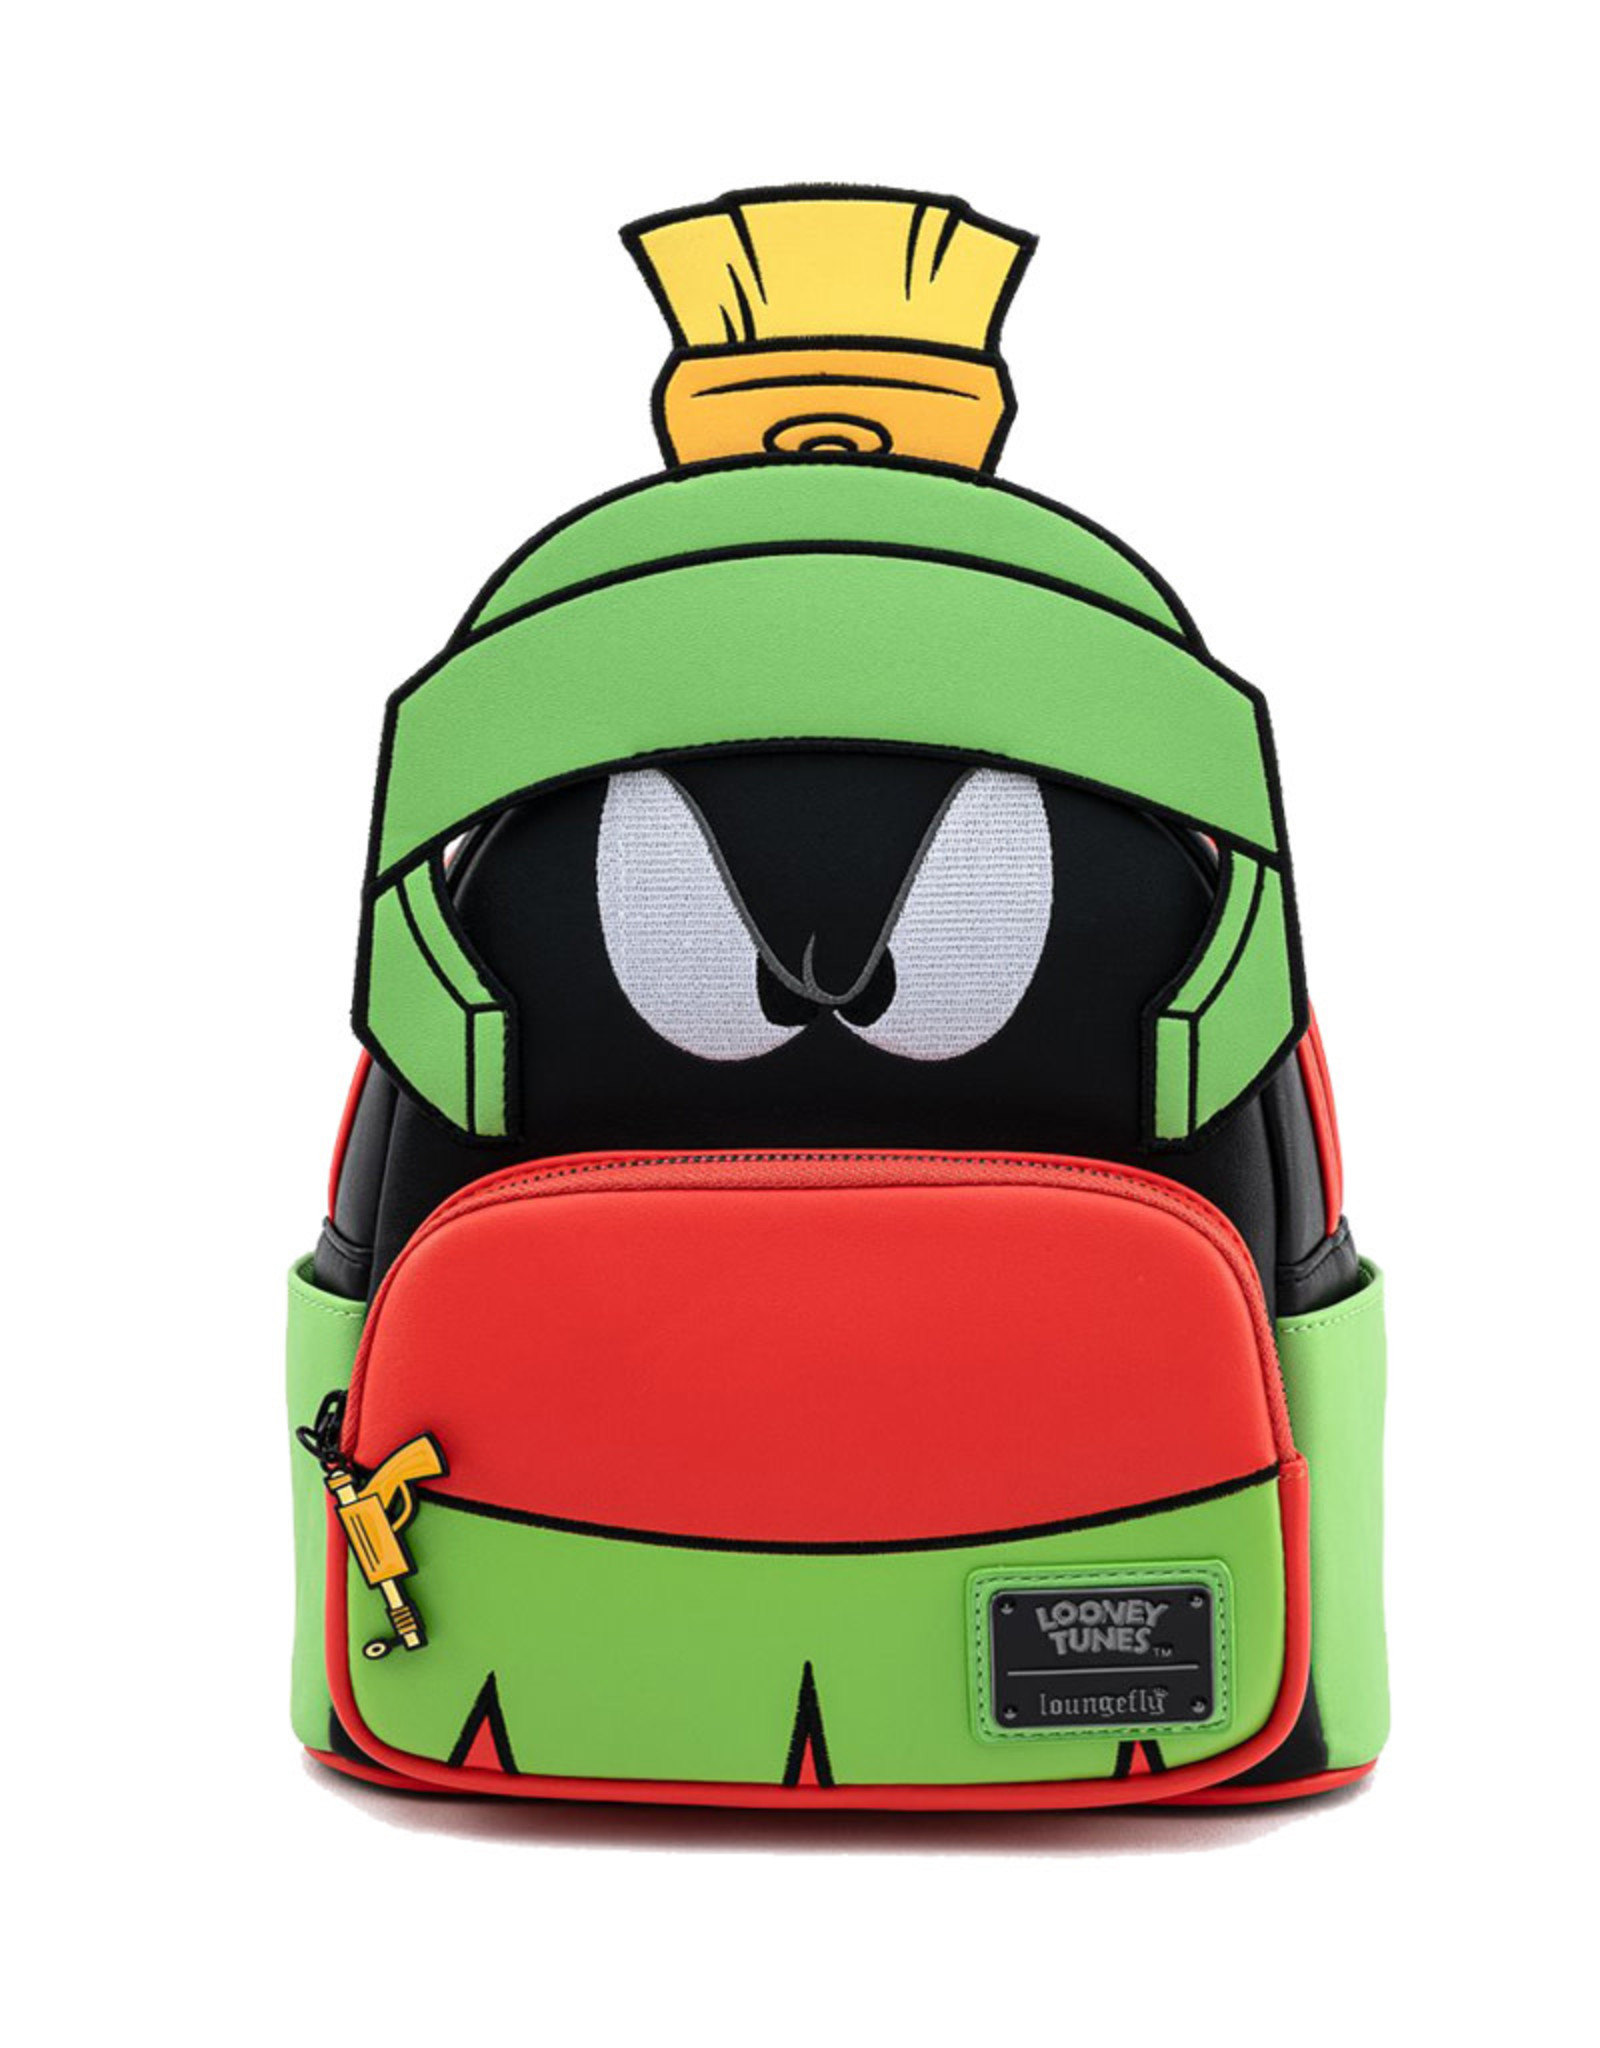 Looney Tunes ( Loungefly mini backpack ) Marvin